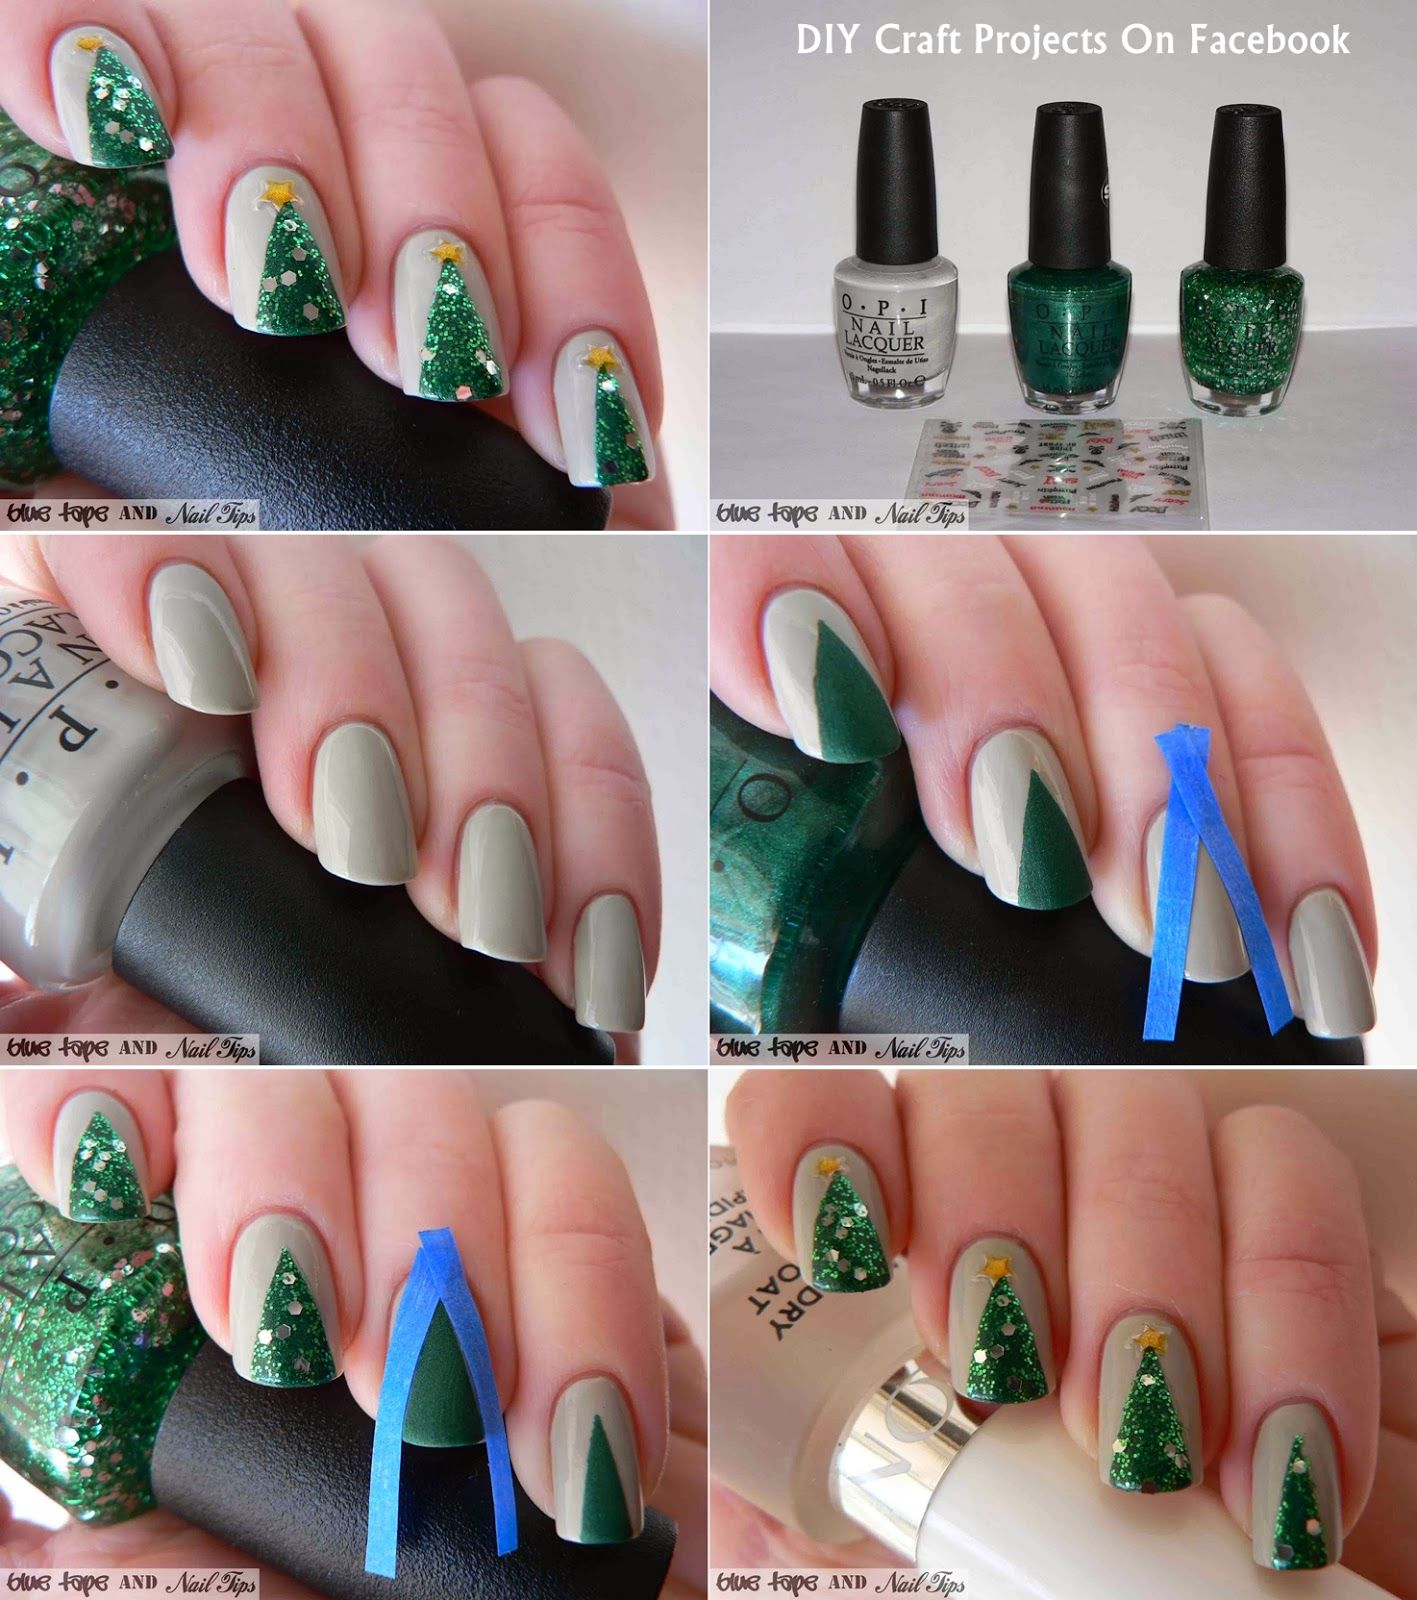 Diy Projects Christmas Nail Art Ideas Nail Design Nail Polish Diy Nails Christmas Tree Nails Christm Christmas Tree Nail Art Christmas Nails Diy Tree Nail Art